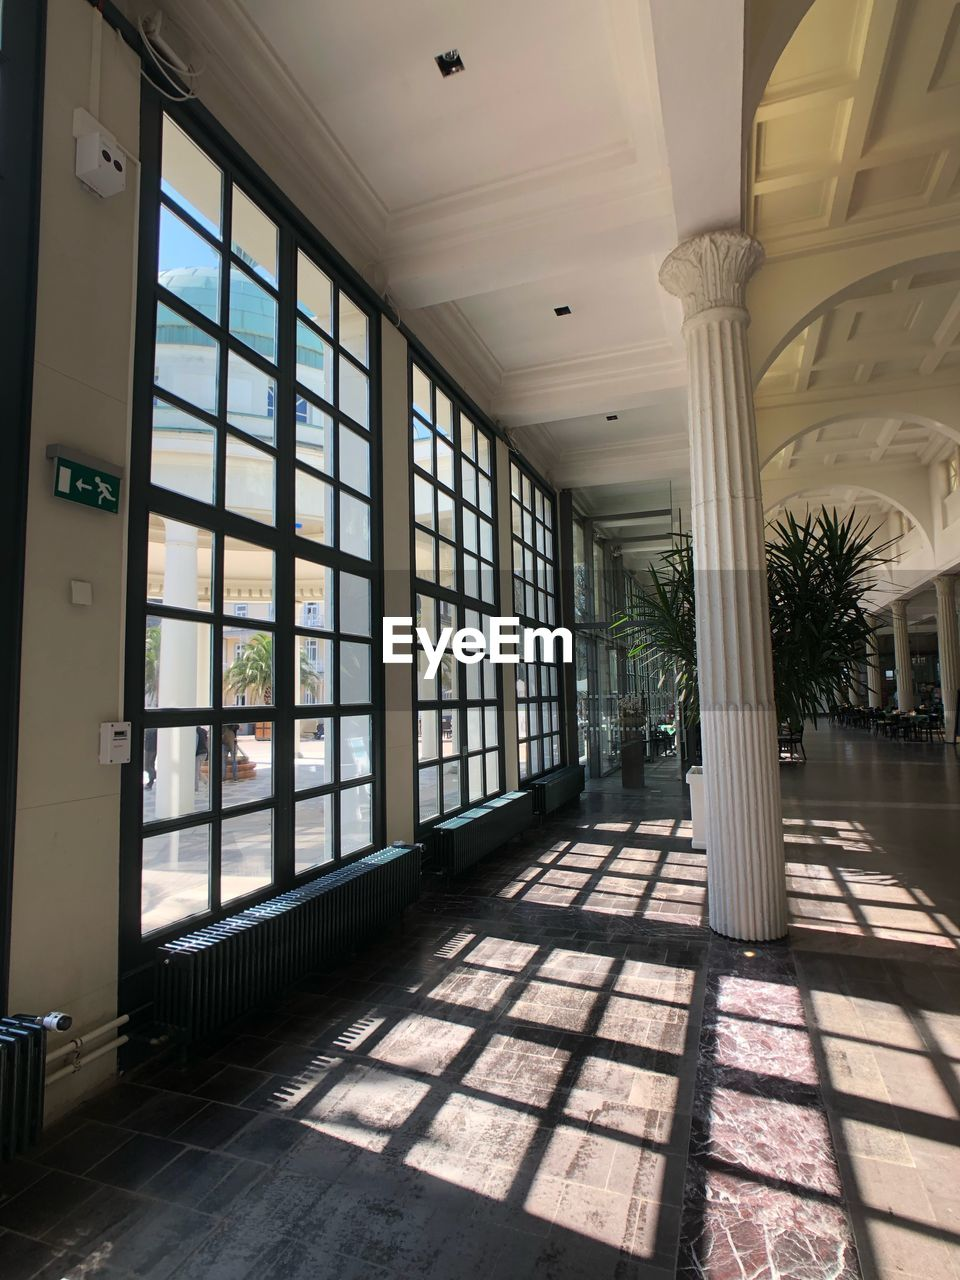 window, architecture, indoors, day, built structure, sunlight, no people, flooring, building, shadow, glass - material, ceiling, nature, empty, absence, transparent, architectural column, corridor, arcade, tiled floor